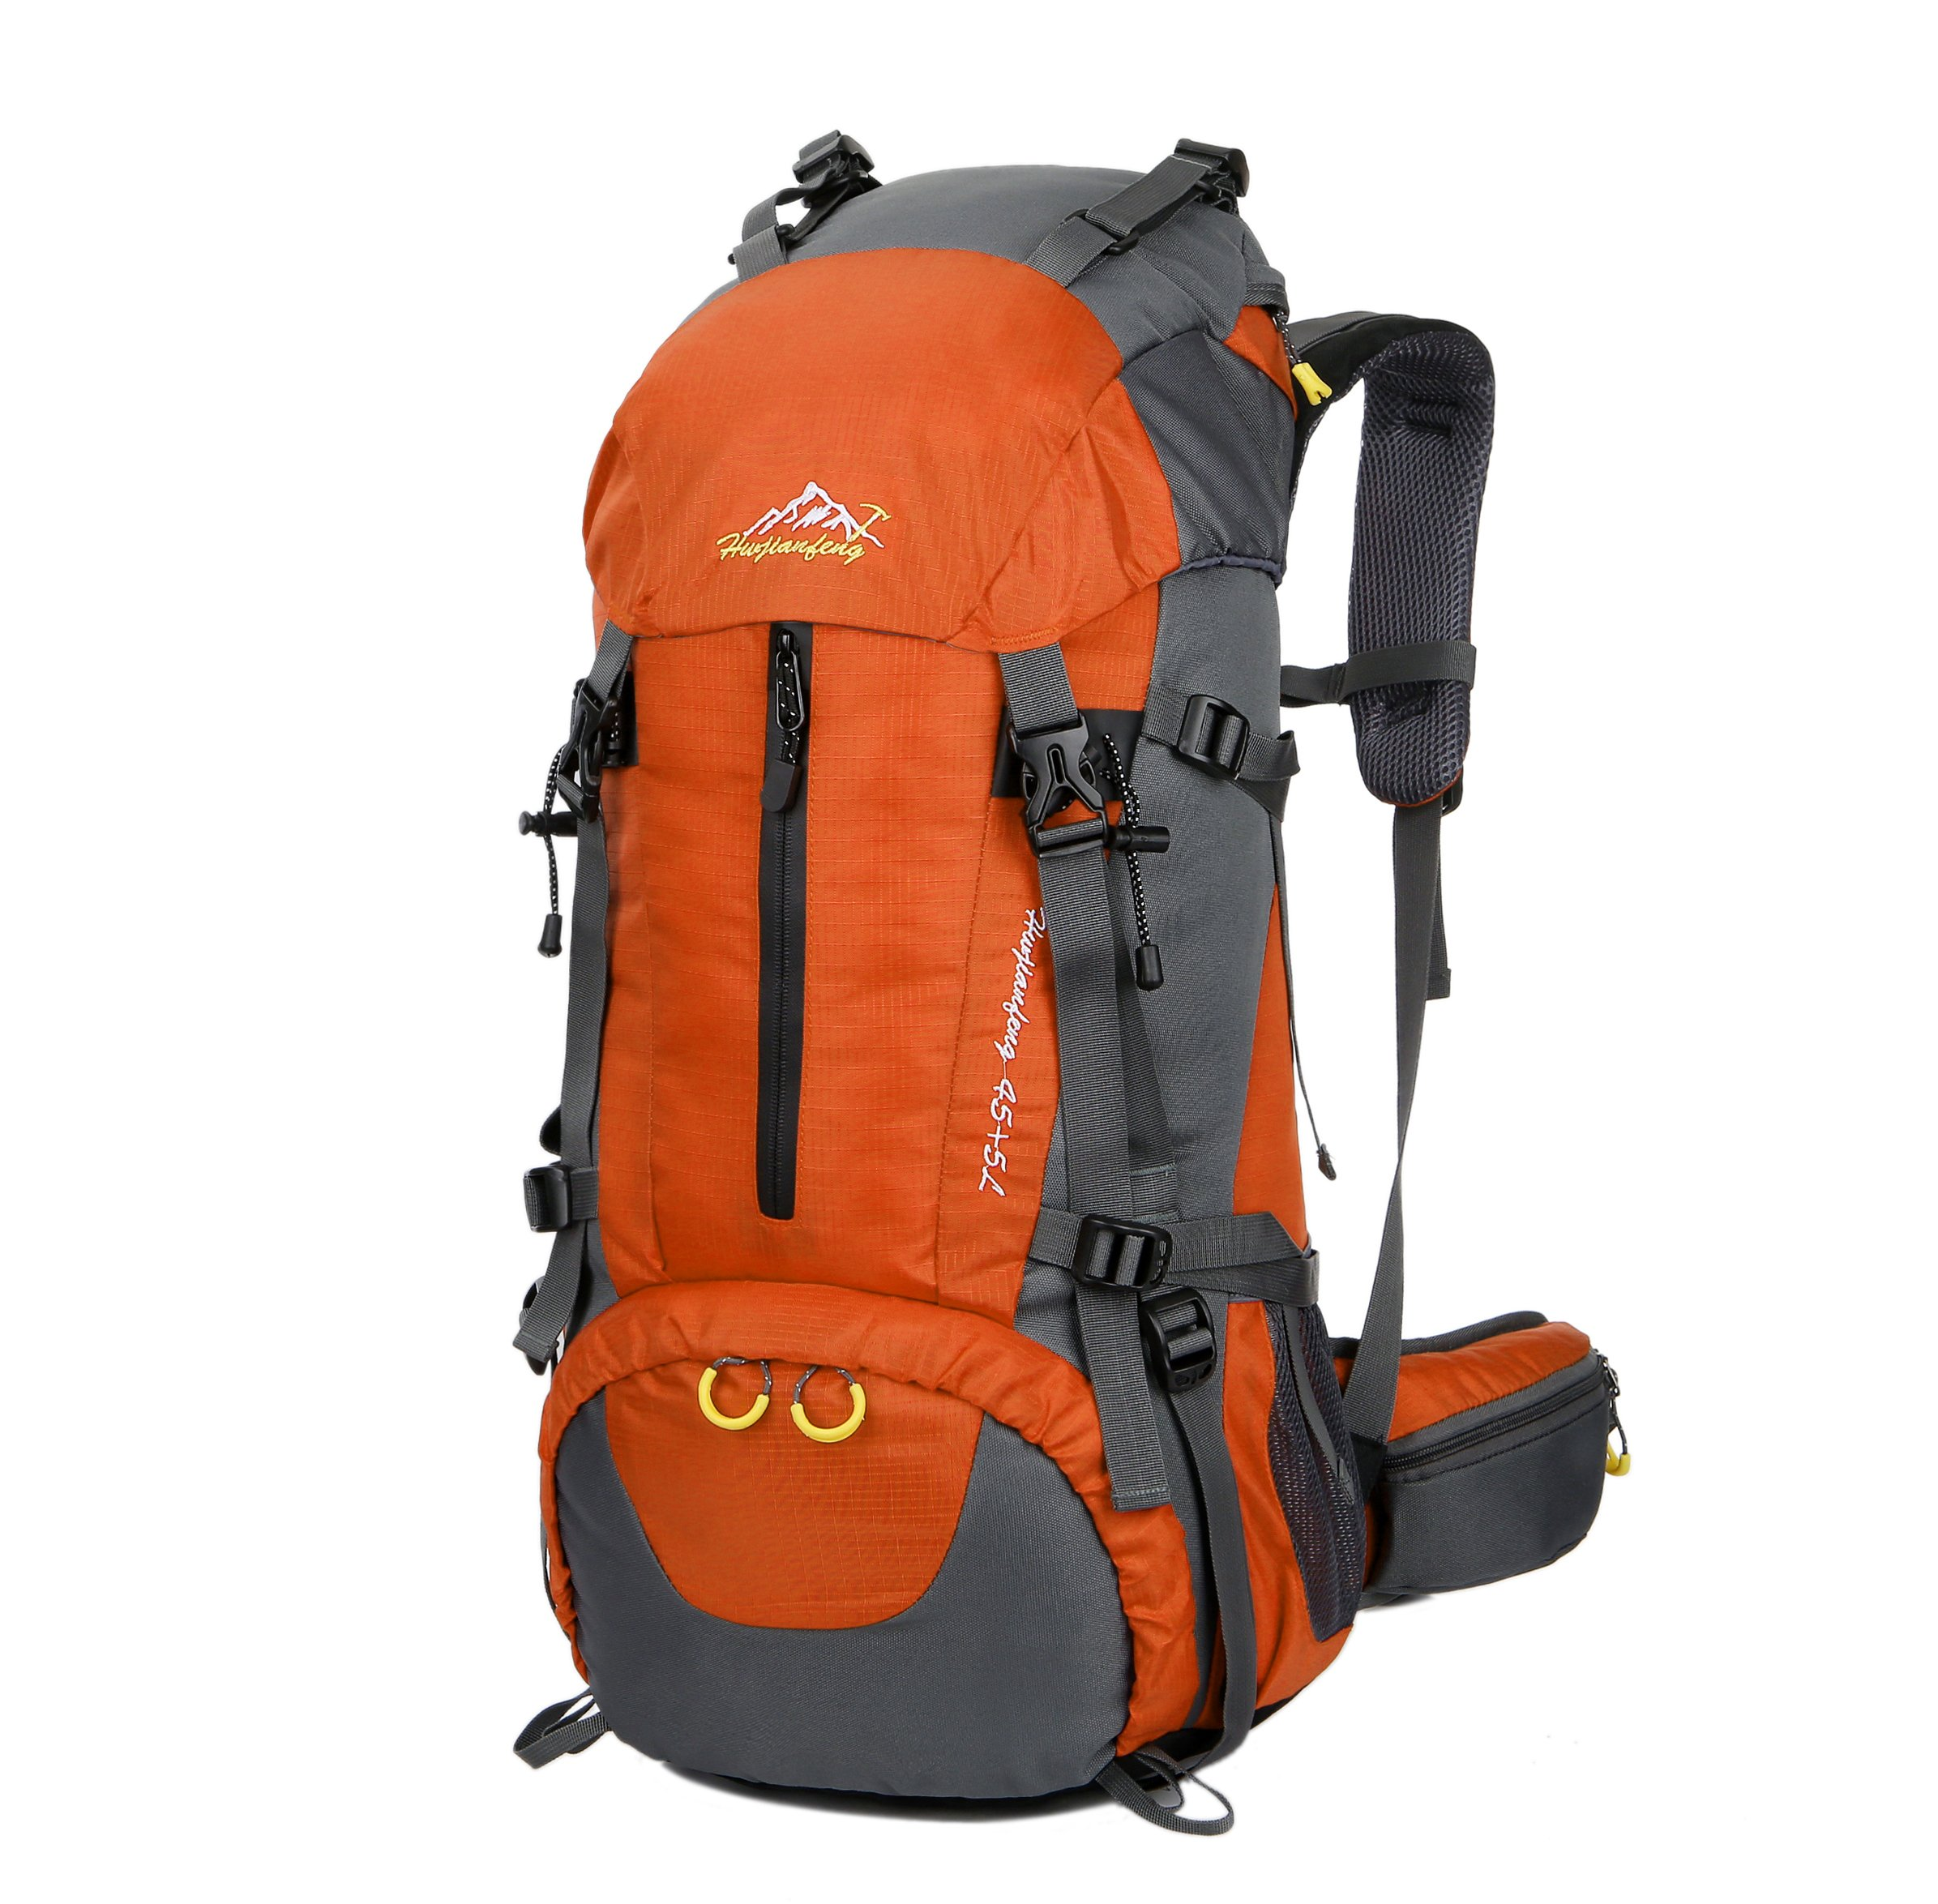 WoneNice 50L(45+5) Waterproof Hiking Backpack - Outdoor Sport Daypack with Rain Cover (Orange, 50L)